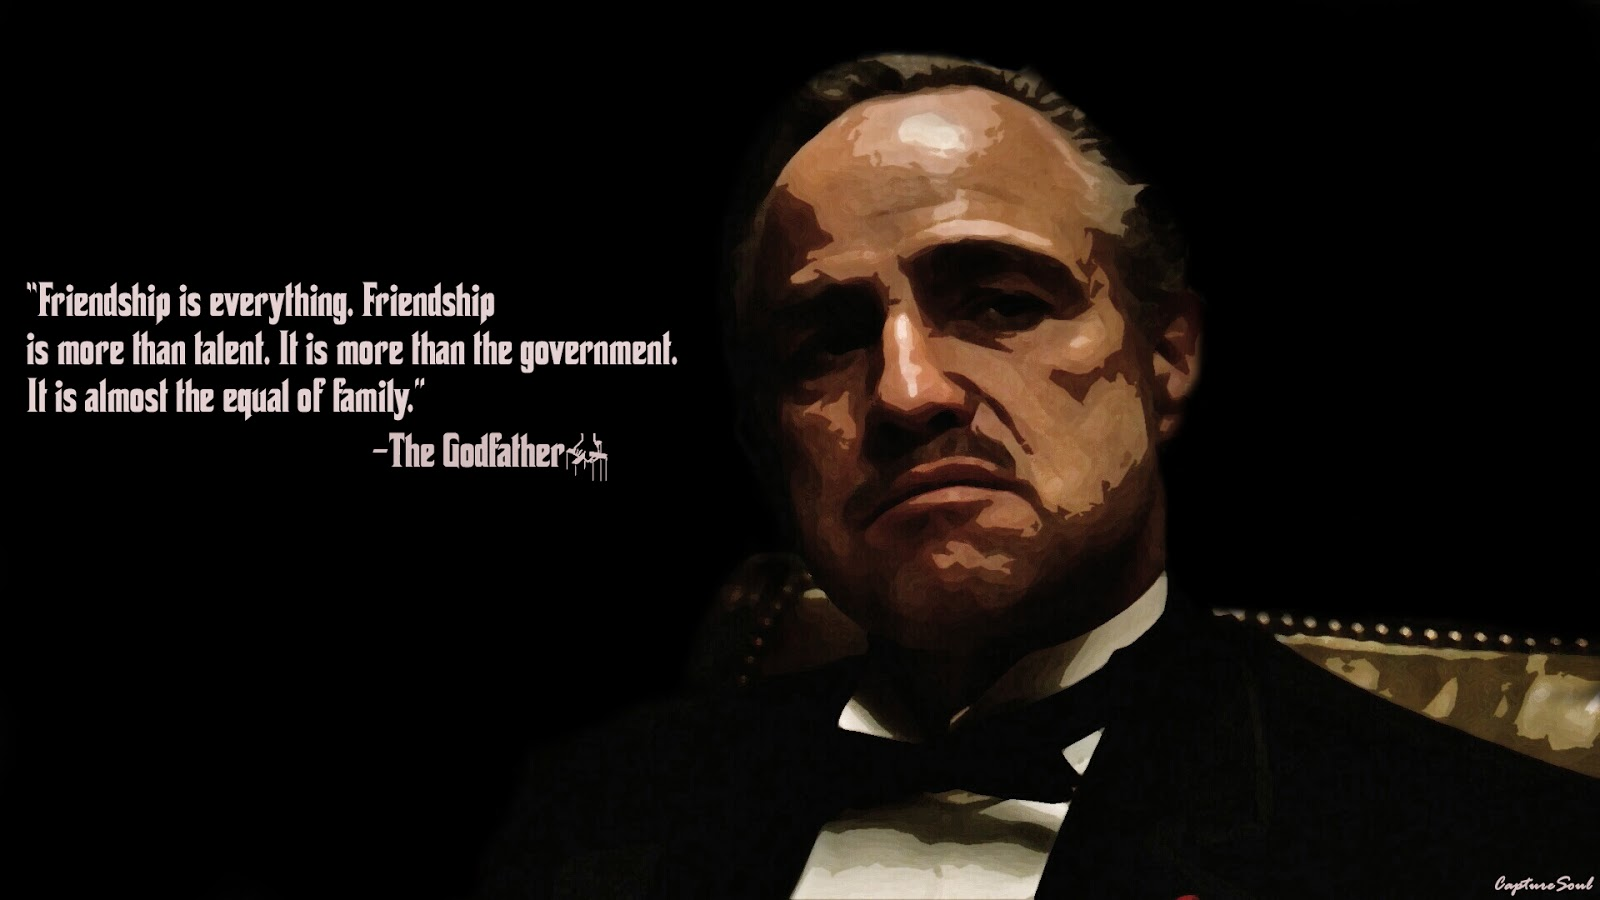 The Godfather - HD Wallpaper